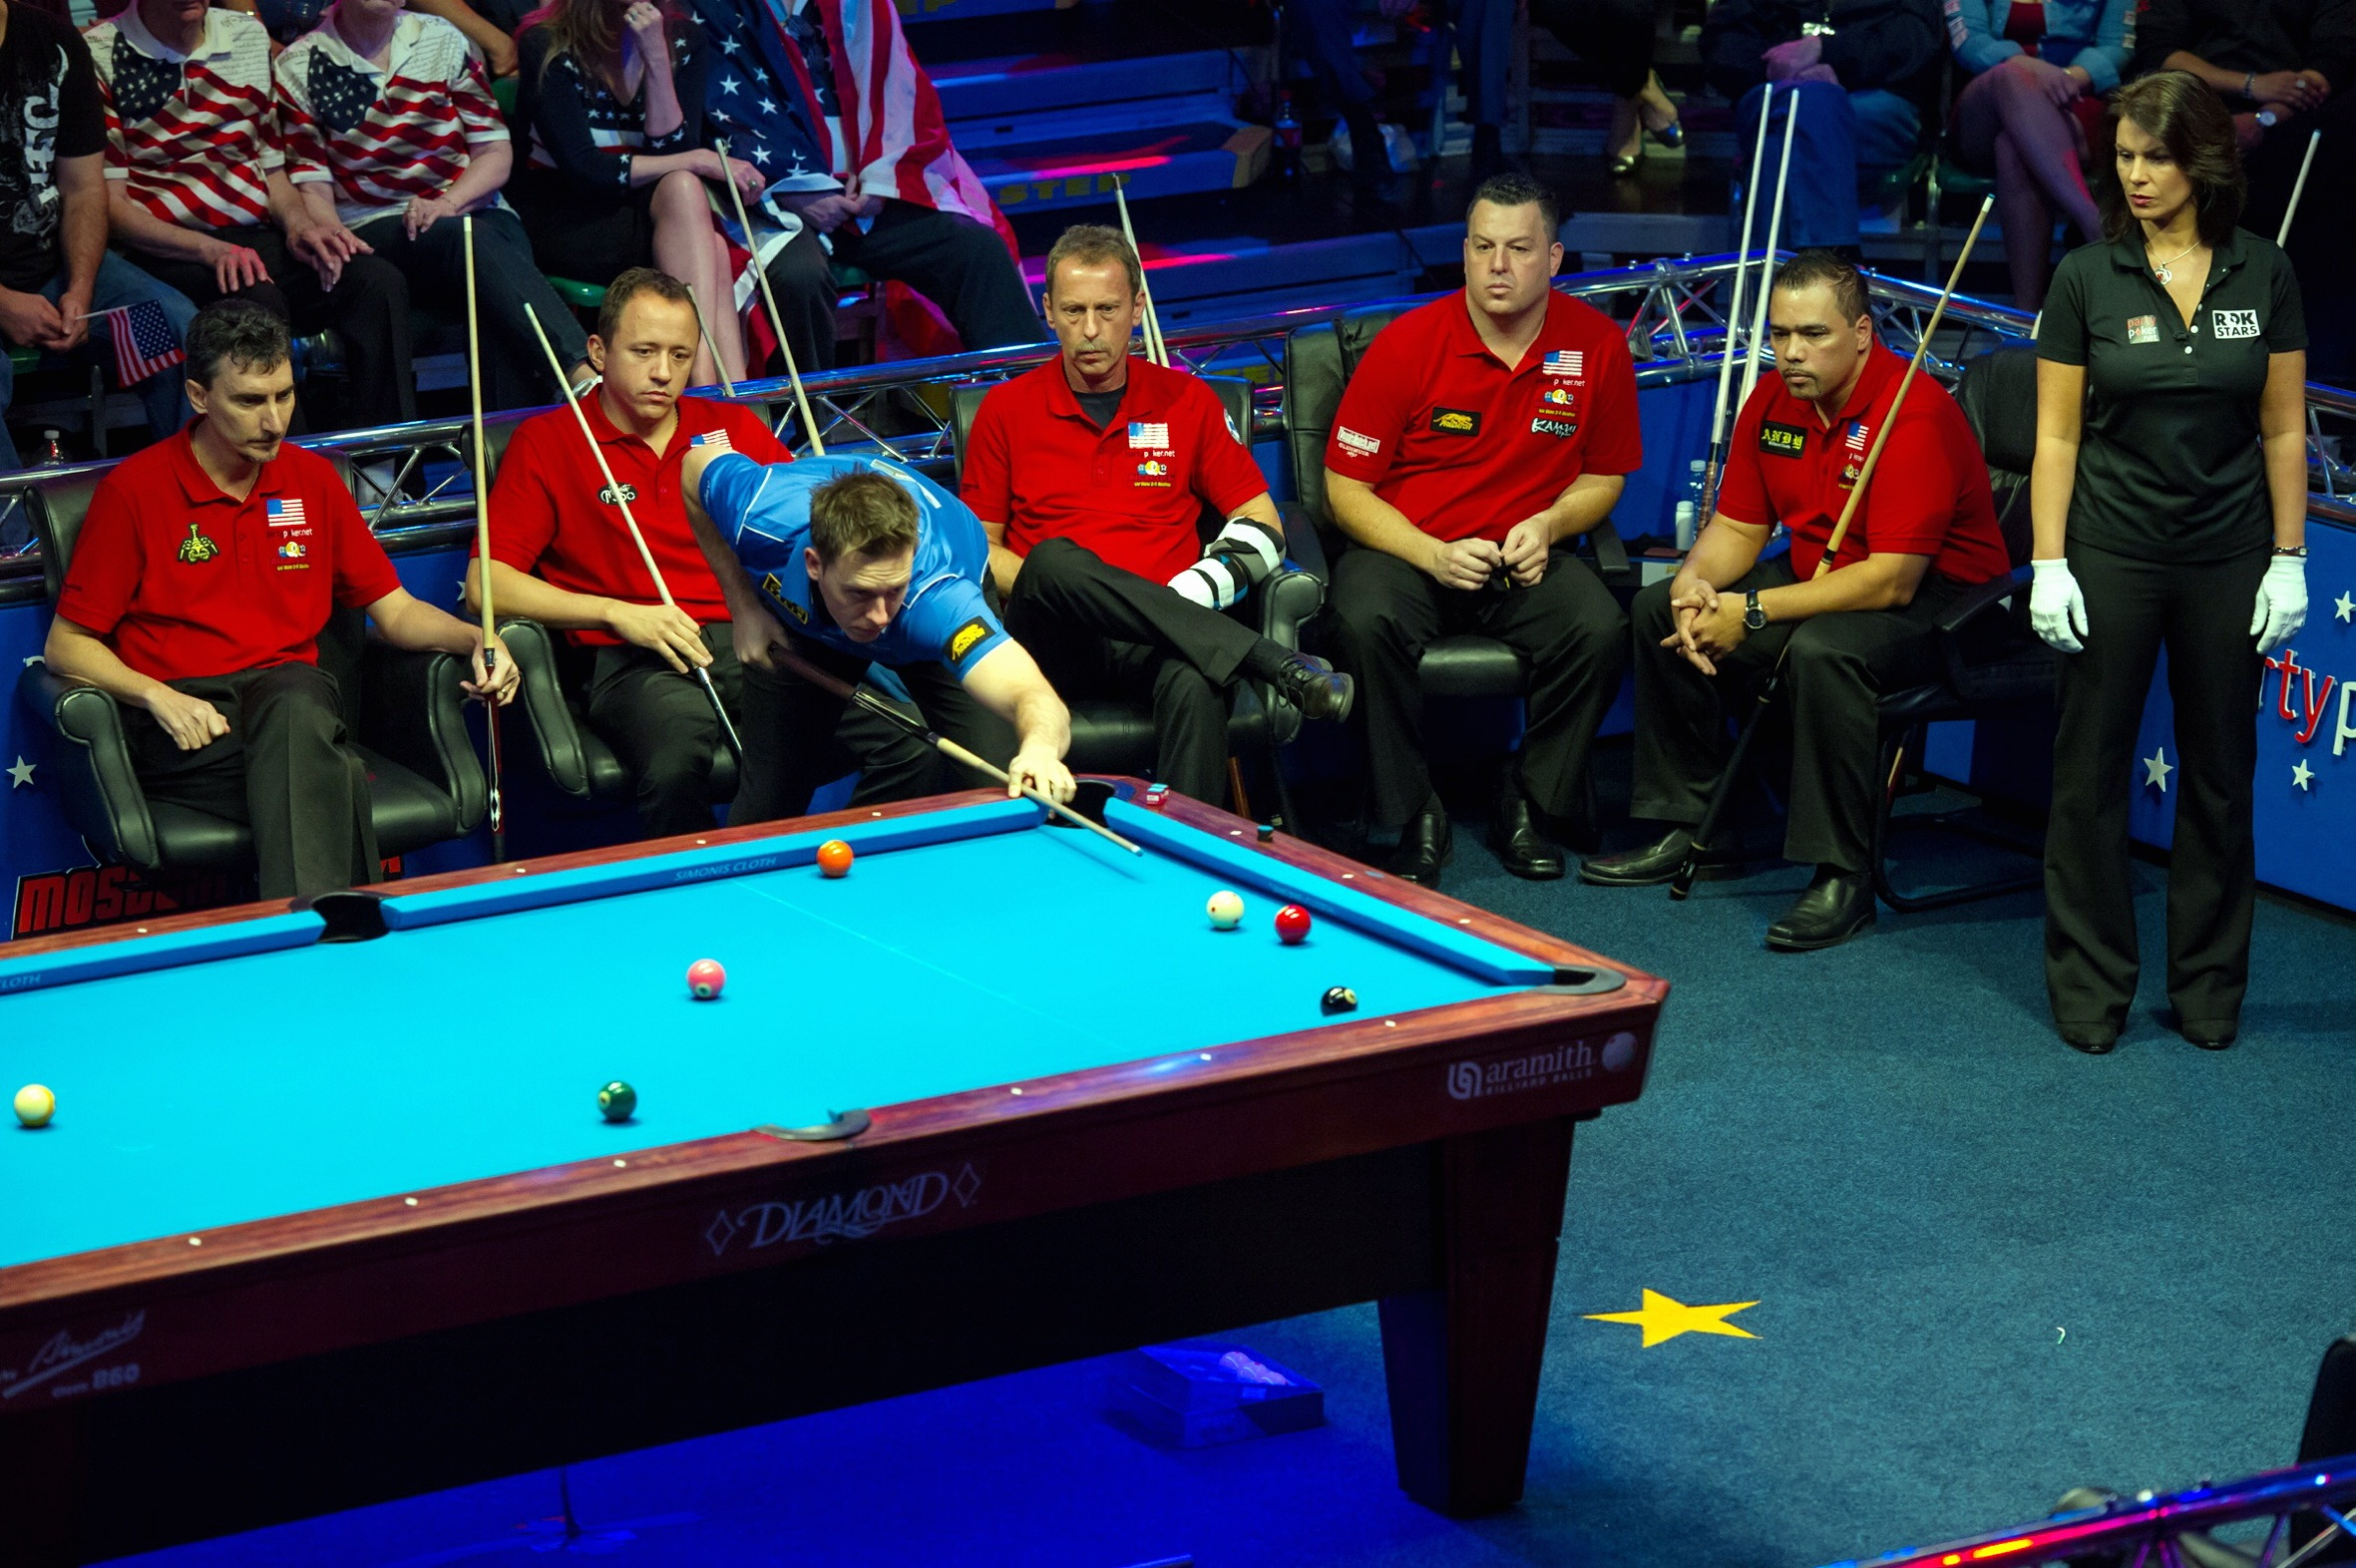 UPDATED: Karl Boyes on target for Mosconi Cup glory | Bradford ...